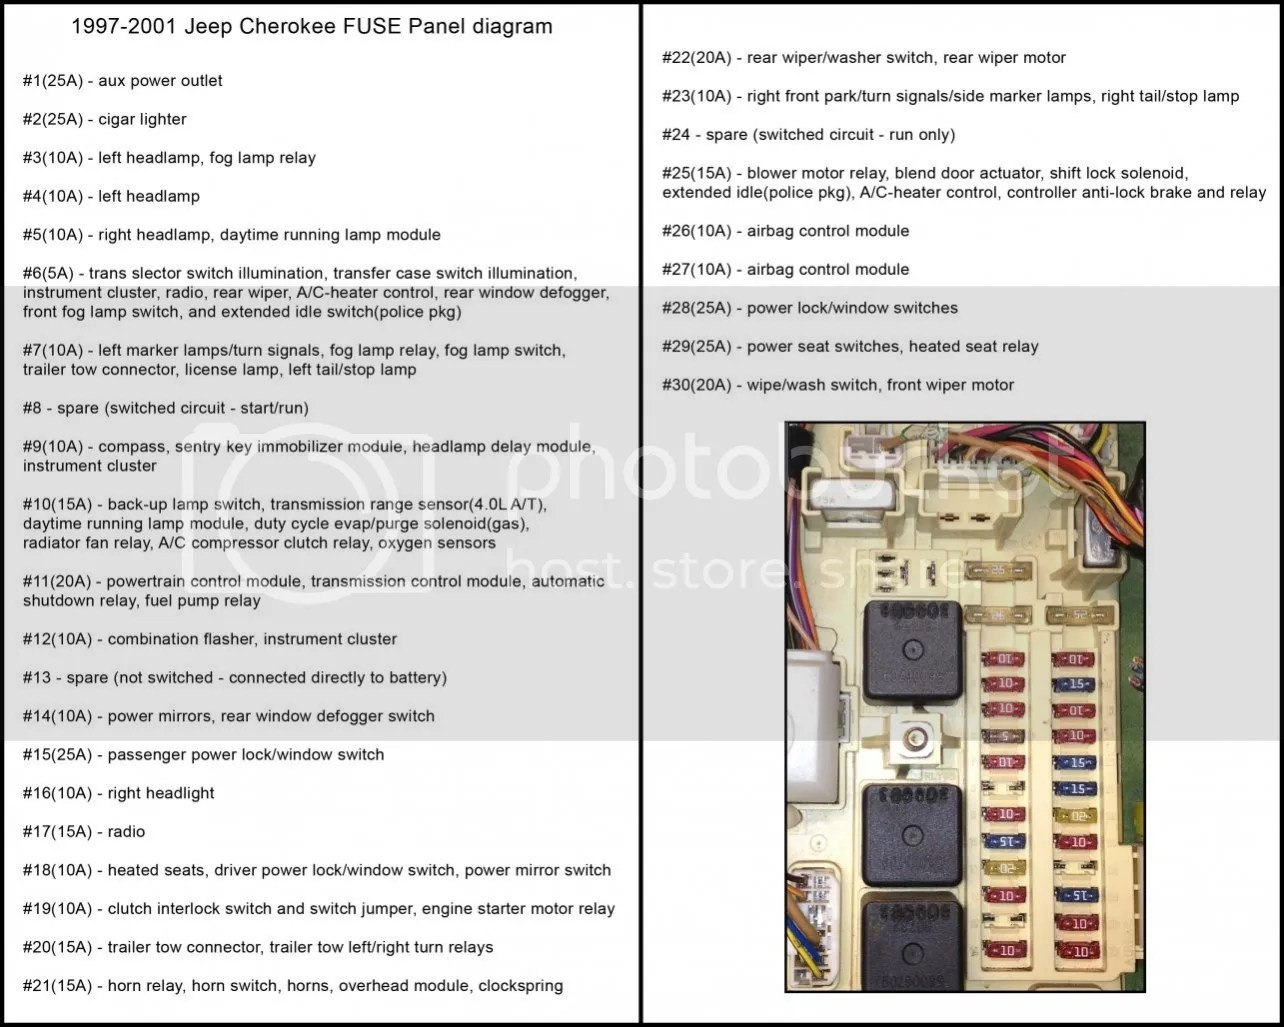 hight resolution of 2000 jeep cherokee fuse panel diagram wiring diagram split 2000 jeep cherokee fuse location free download wiring diagram